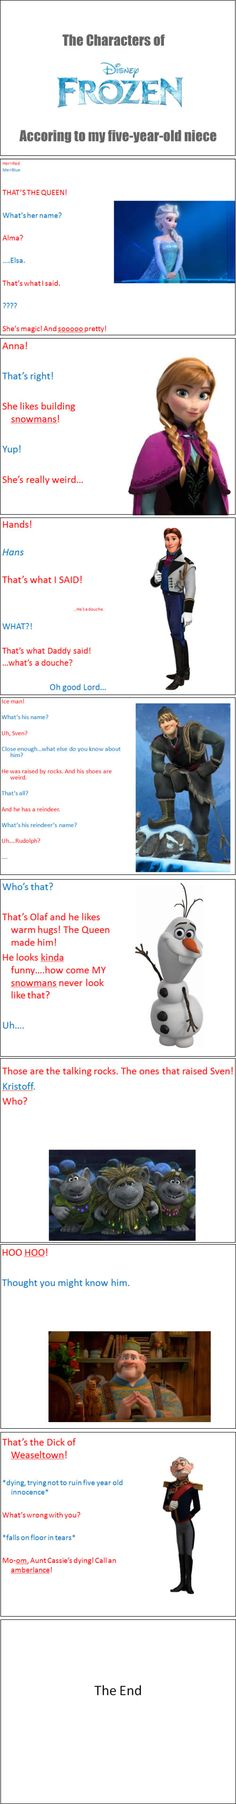 The characters of Frozen according to a five-year-old girl. SO FUNNY